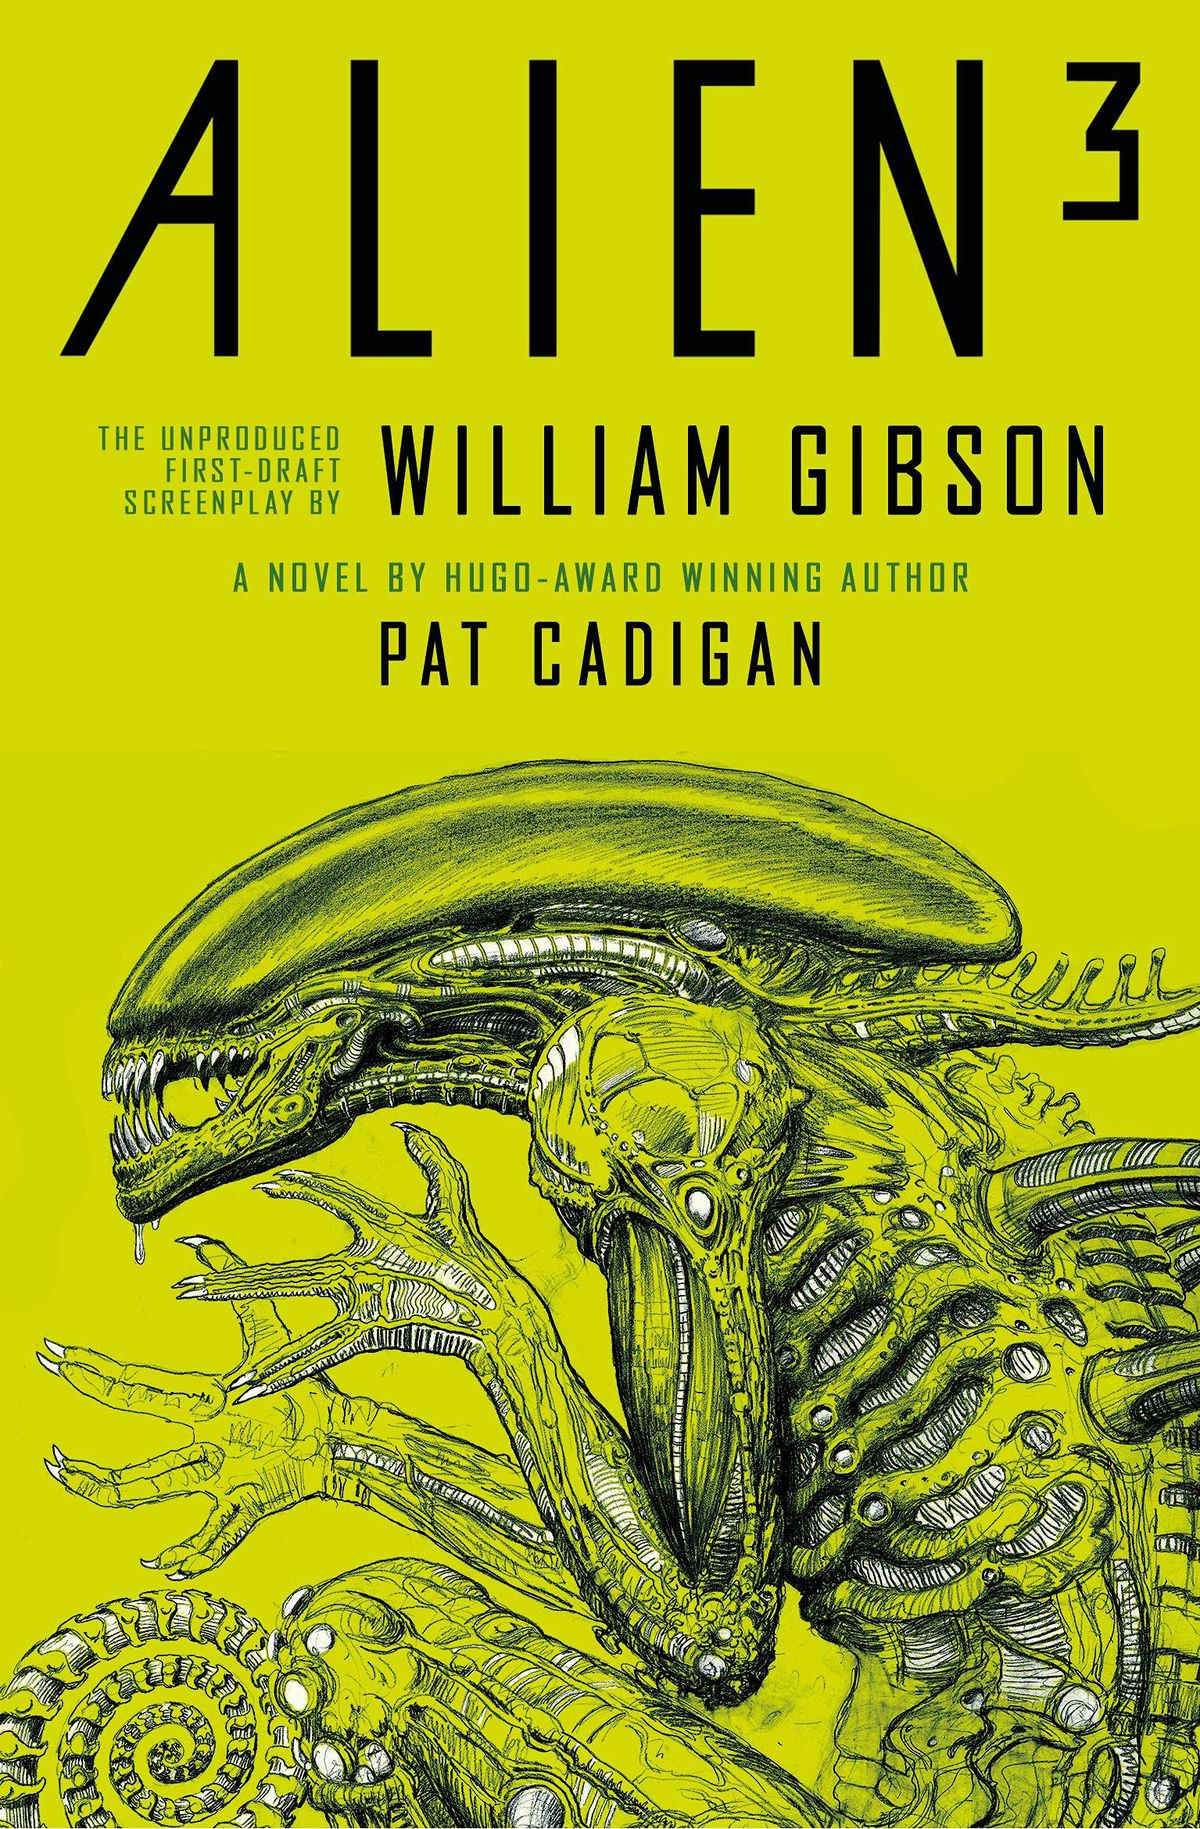 Alien³: The Unproduced First-Draft Screenplay book cover featuring a curled up xenomorph